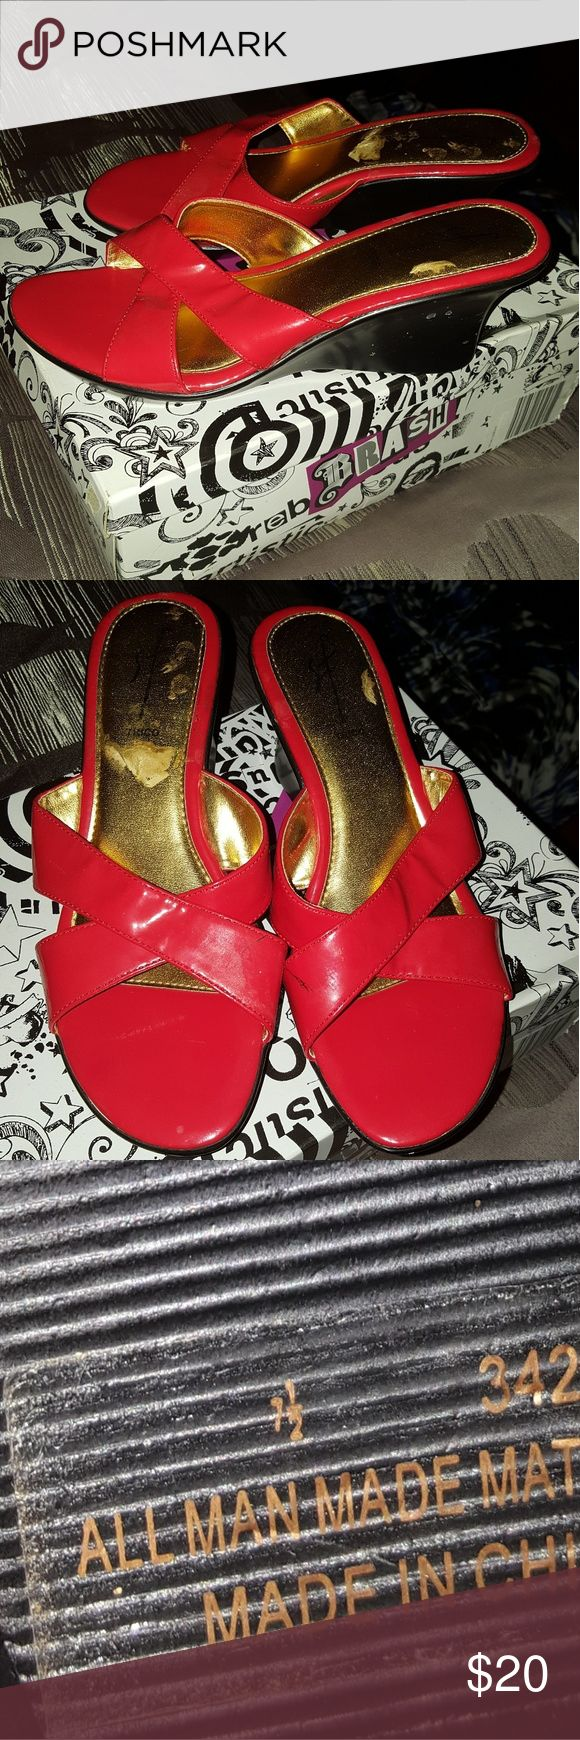 Women's red sandals size 7.5. Women's red sandals size 7.5. I wore them only one time for a few hours to a bridal shower to go with the outfit I was wearing. I purchased them at TJ MAXX for $39. They were super comfy but I unfortunately have not worn them since.  I don't dress up much and particularly don't have many red clothing items to match them with.  I found them today while cleaning out my closet and figured I would sell them to someone who would appreciate them more:) Shoes Sandals